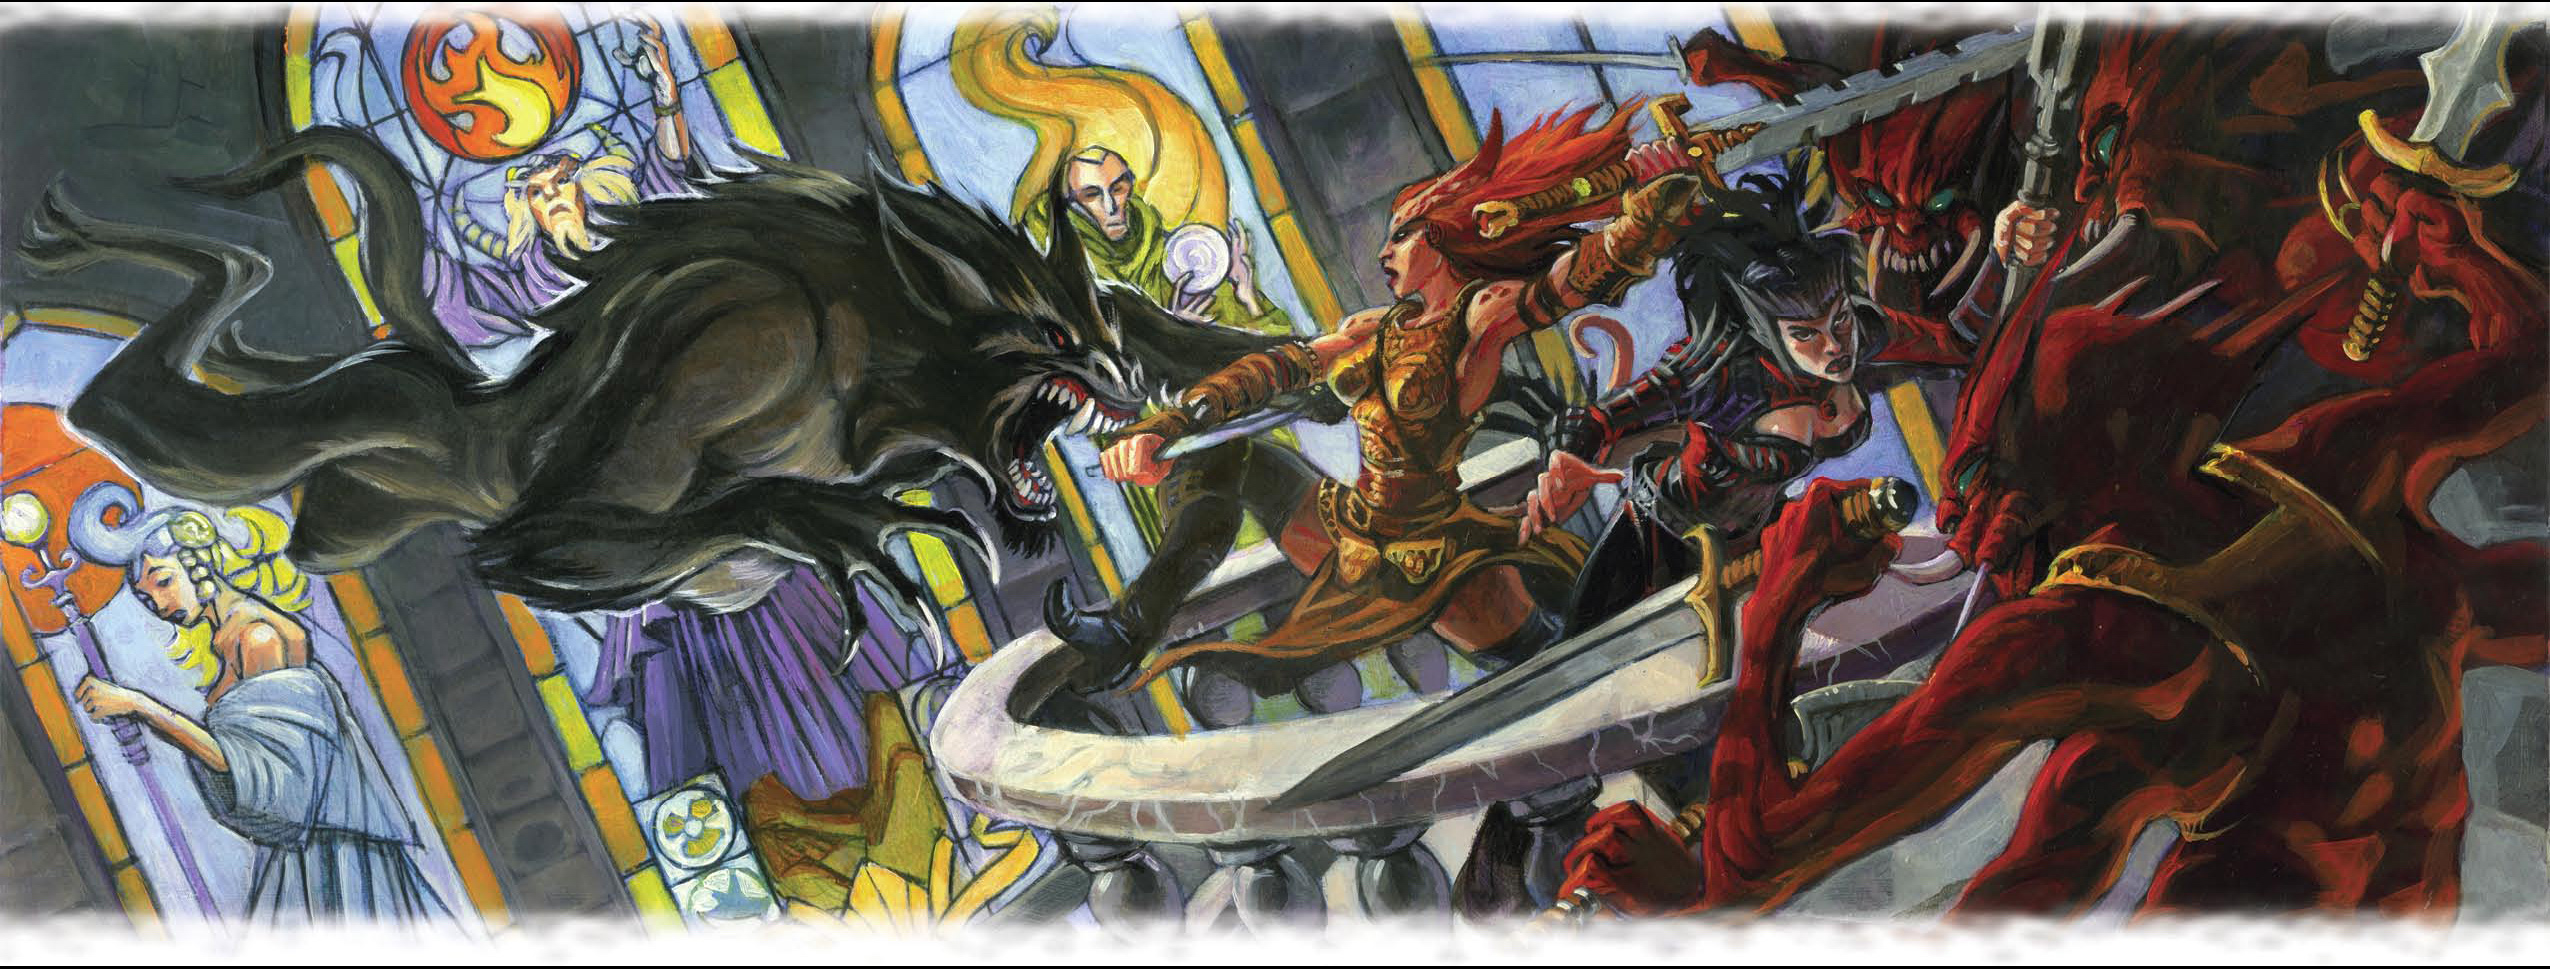 "{$tags} Tiefling barghest e xill, incontri ""accademici"" - by Steve Ellis Dungeon Magazine #140 (2006-11) © Wizards of the Coast & Hasbro"